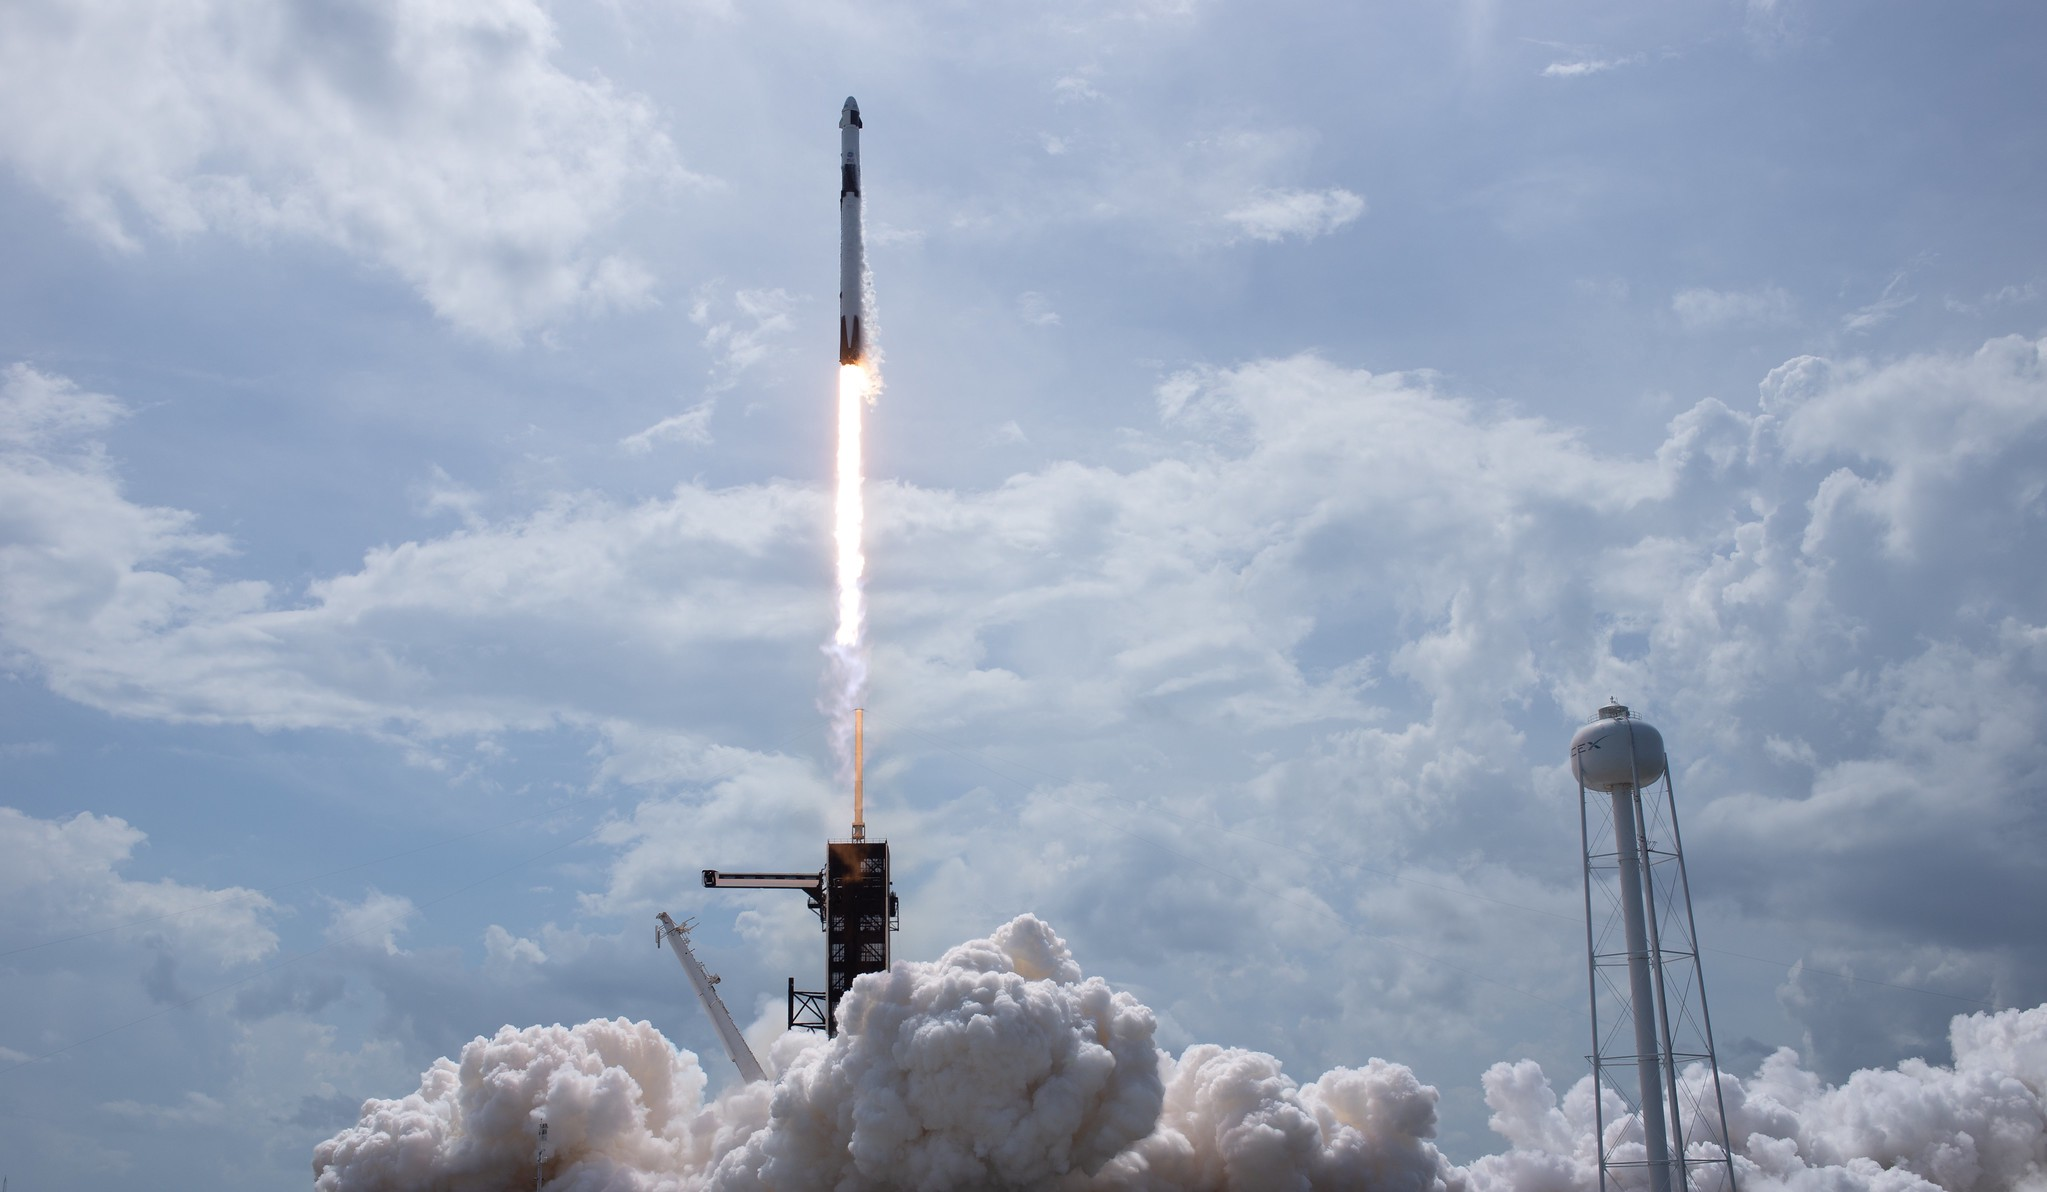 How NASA and SpaceX made history by launching American astronauts into